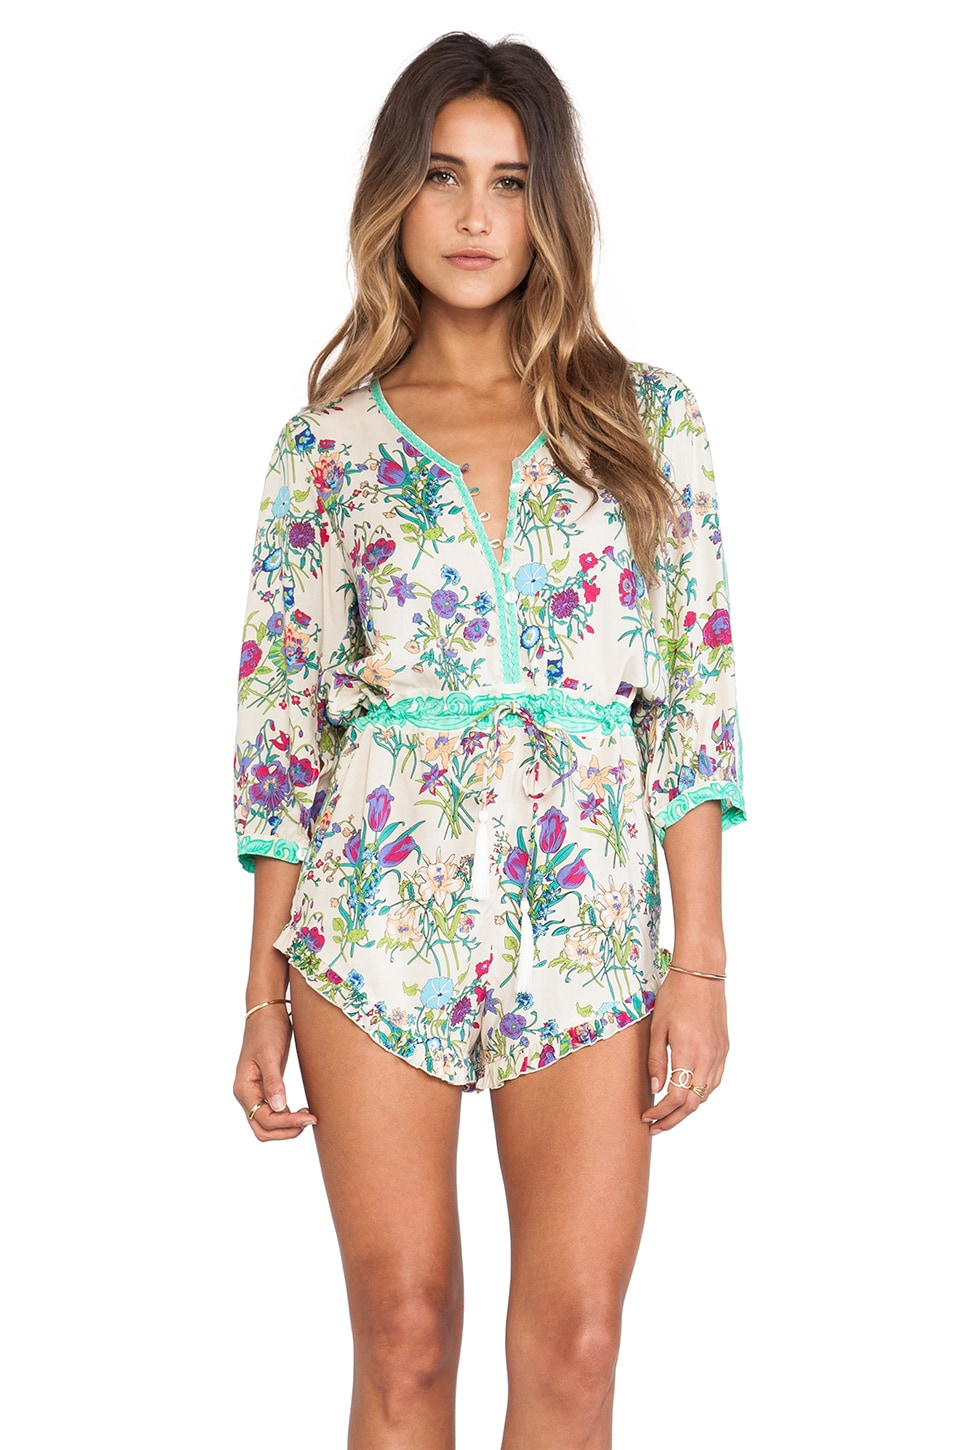 Spell & The Gypsy Collective Gypsy Queen Romper in Cream Floral